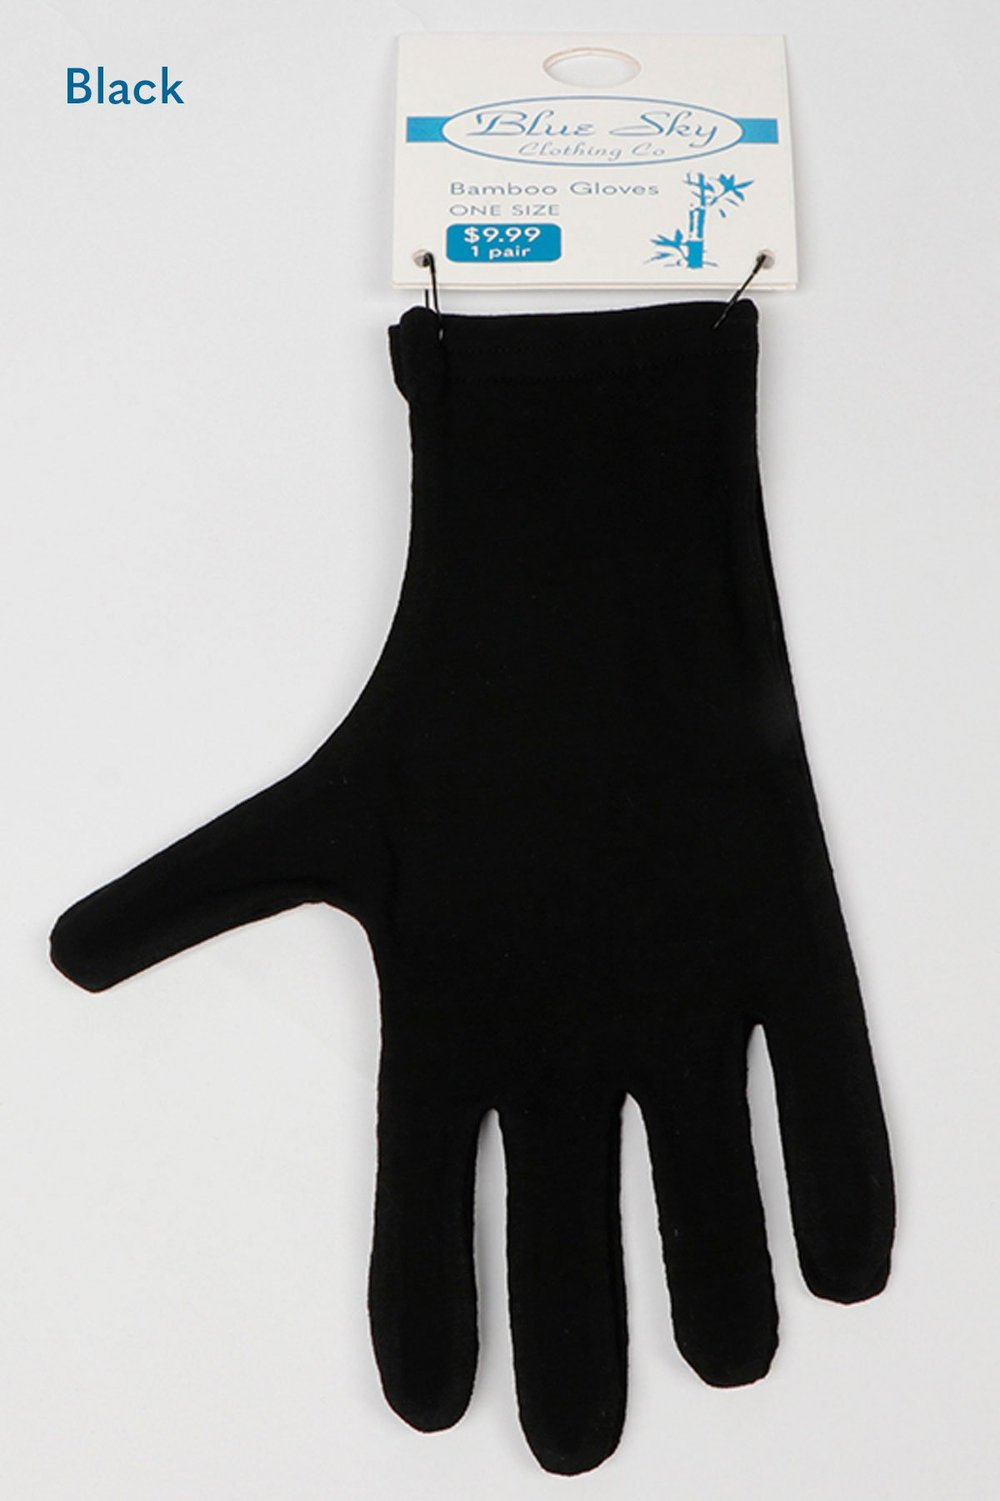 Bamboo Gloves, Assorted - Blue Sky Clothing Co